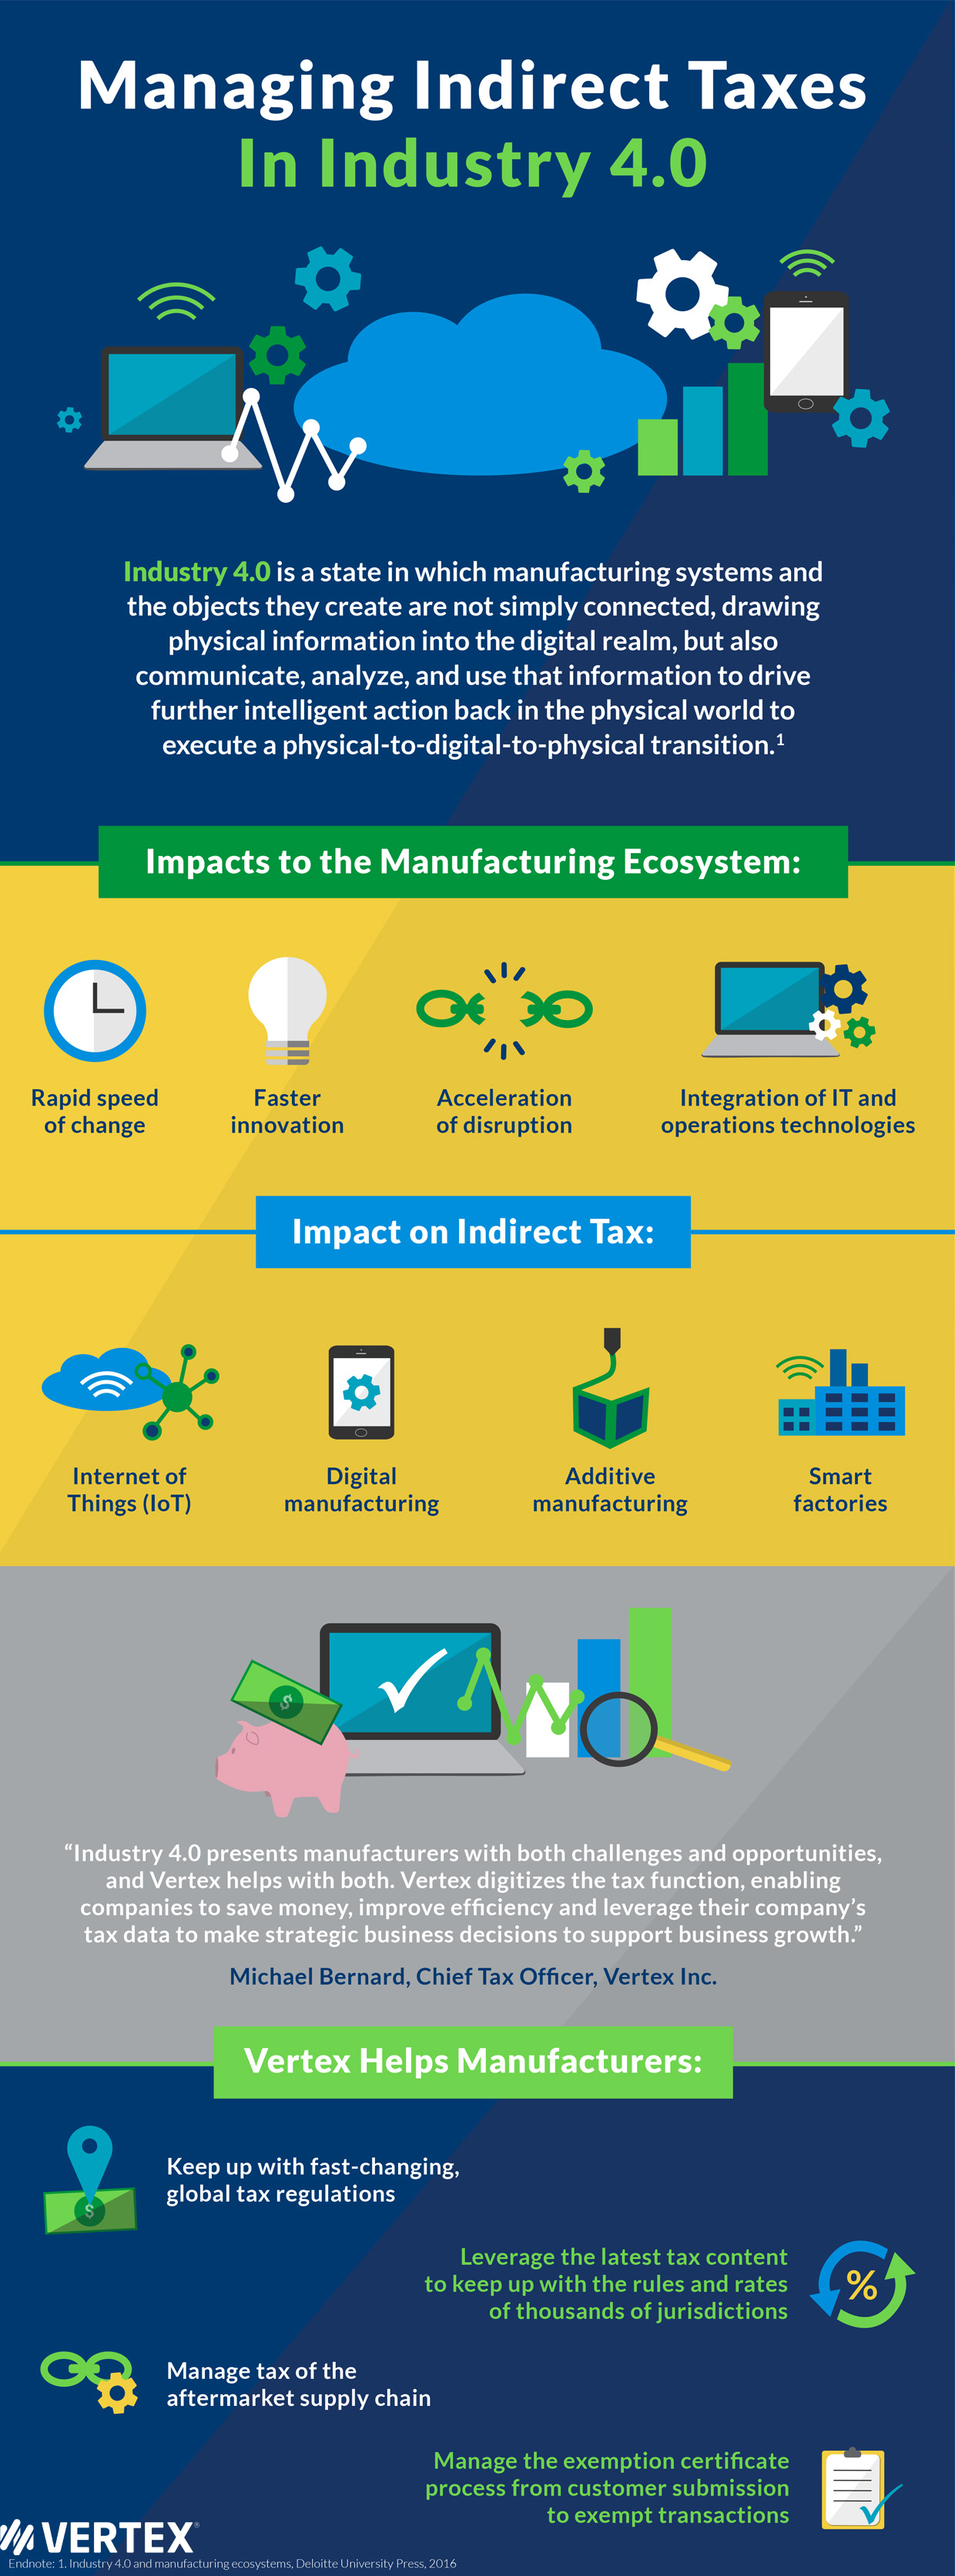 Managing Indirect Taxes In Industry 4.0